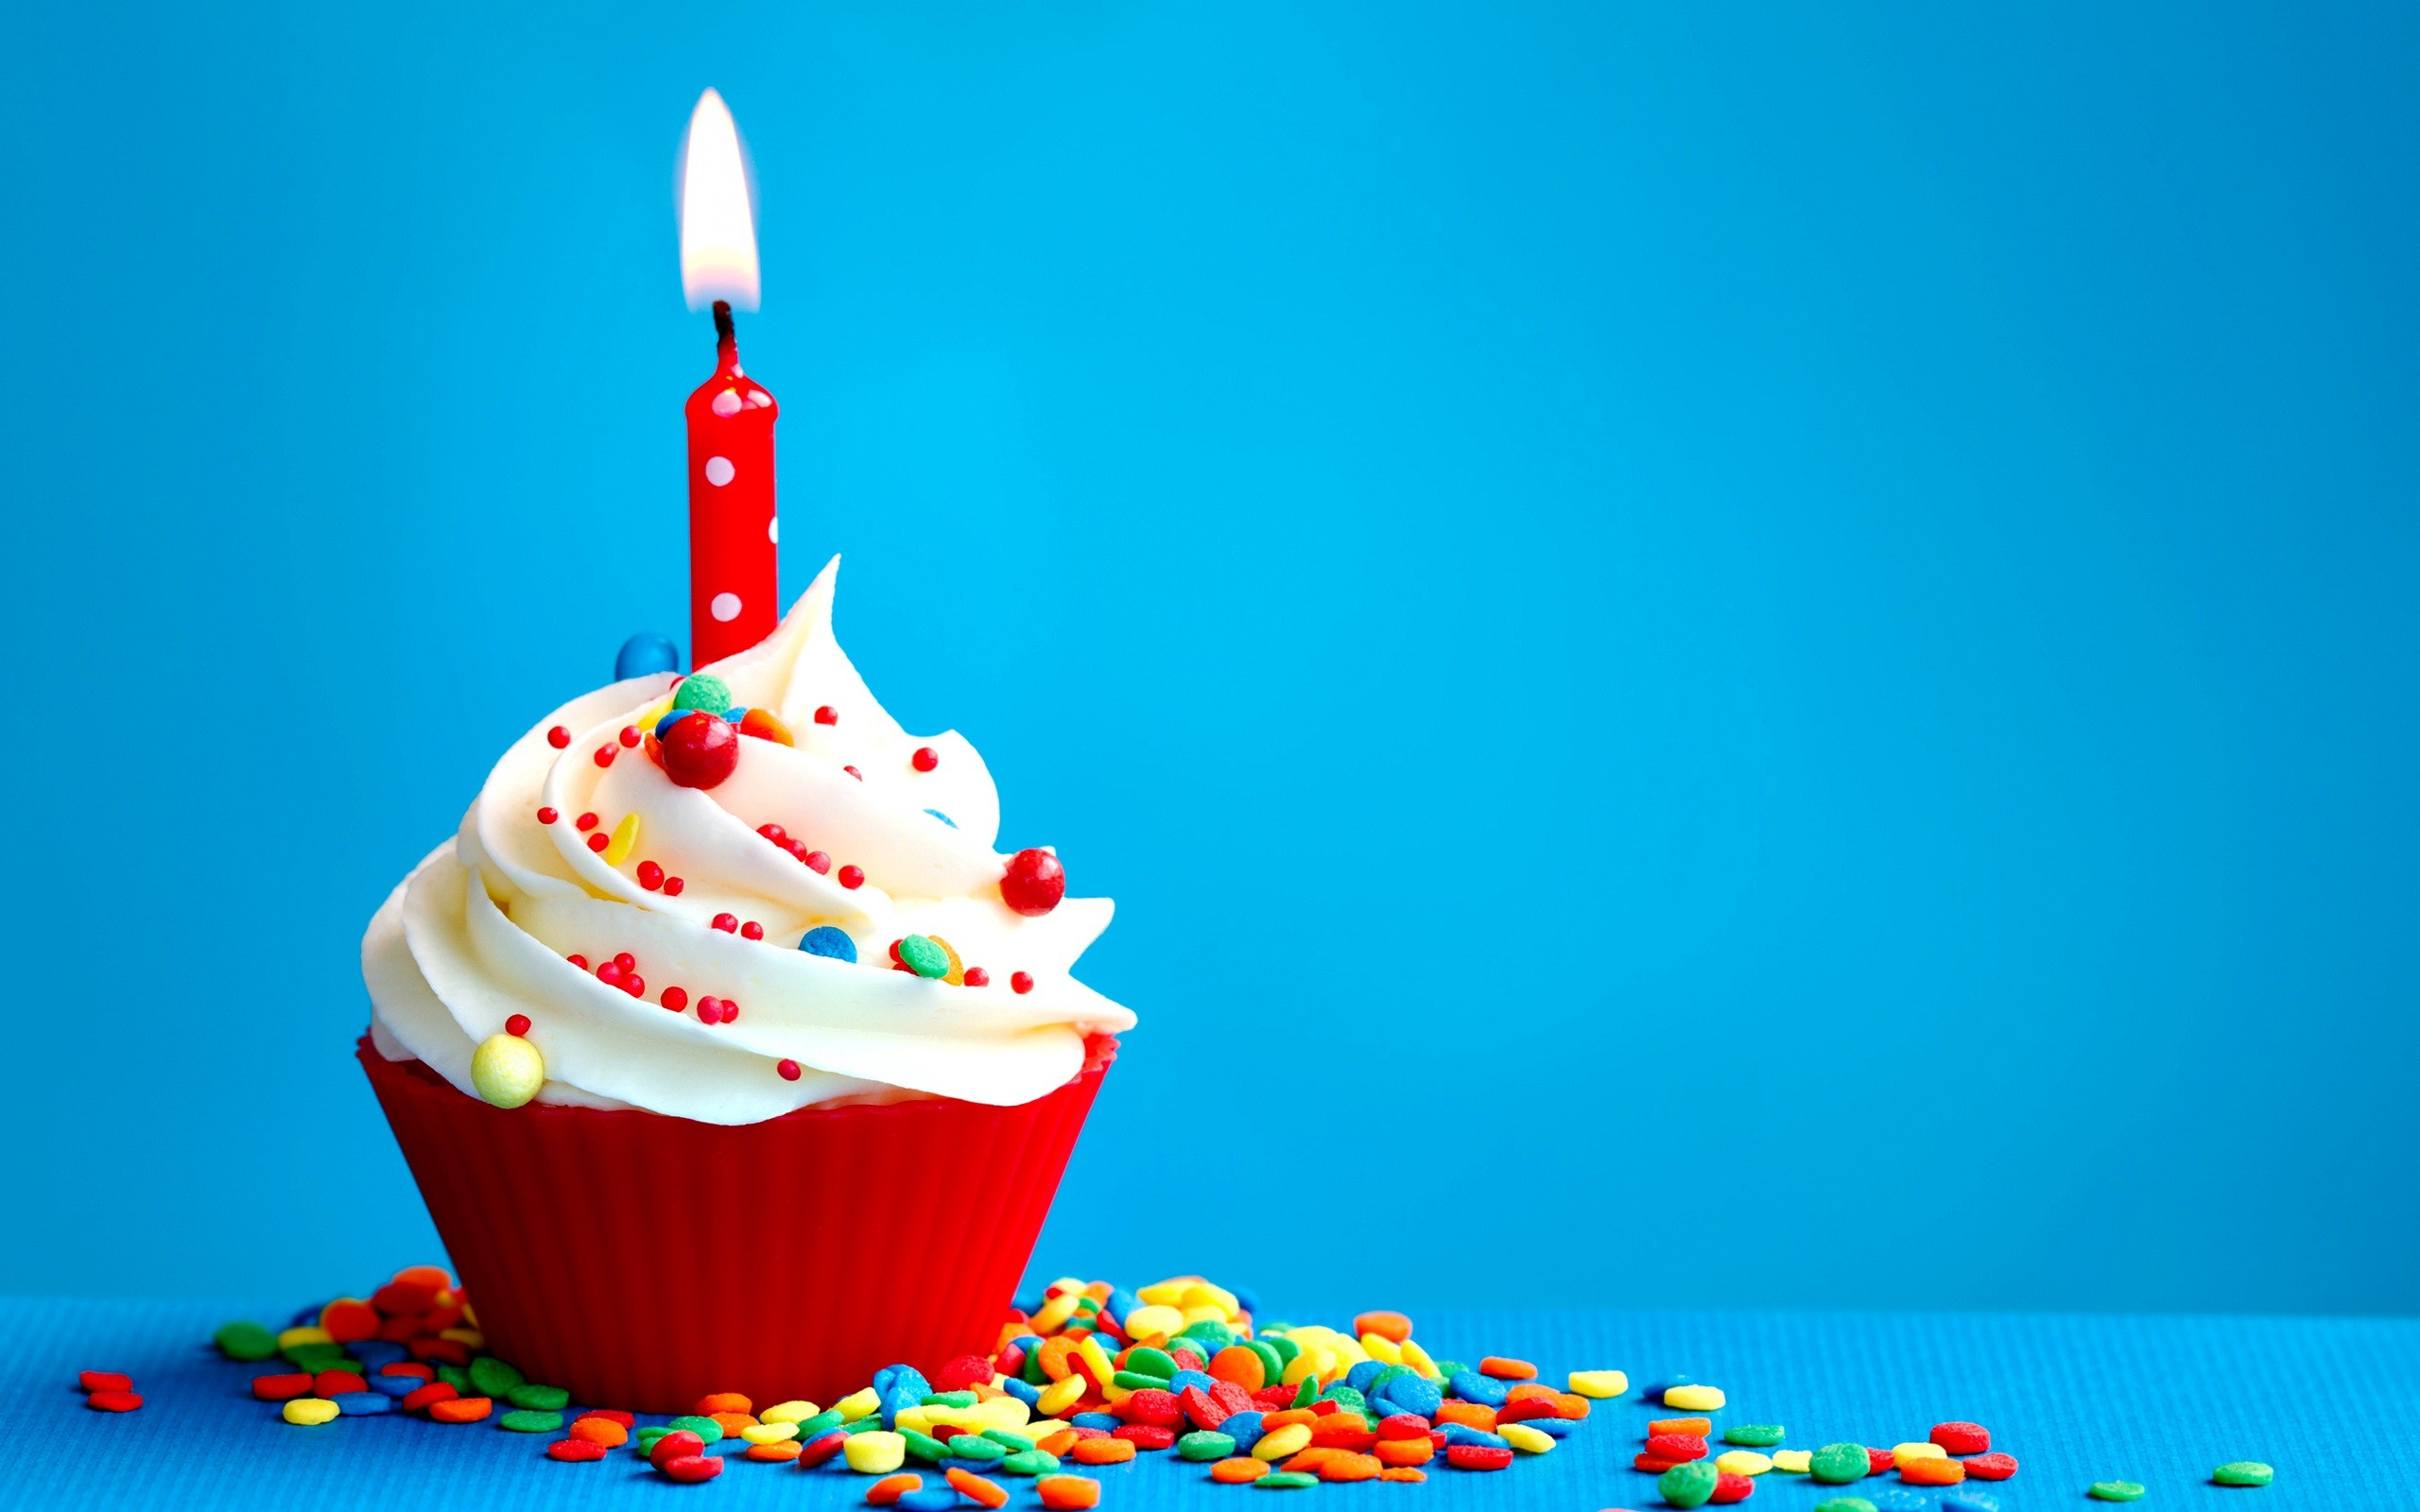 Hd Birthday Wallpapers 53 Images